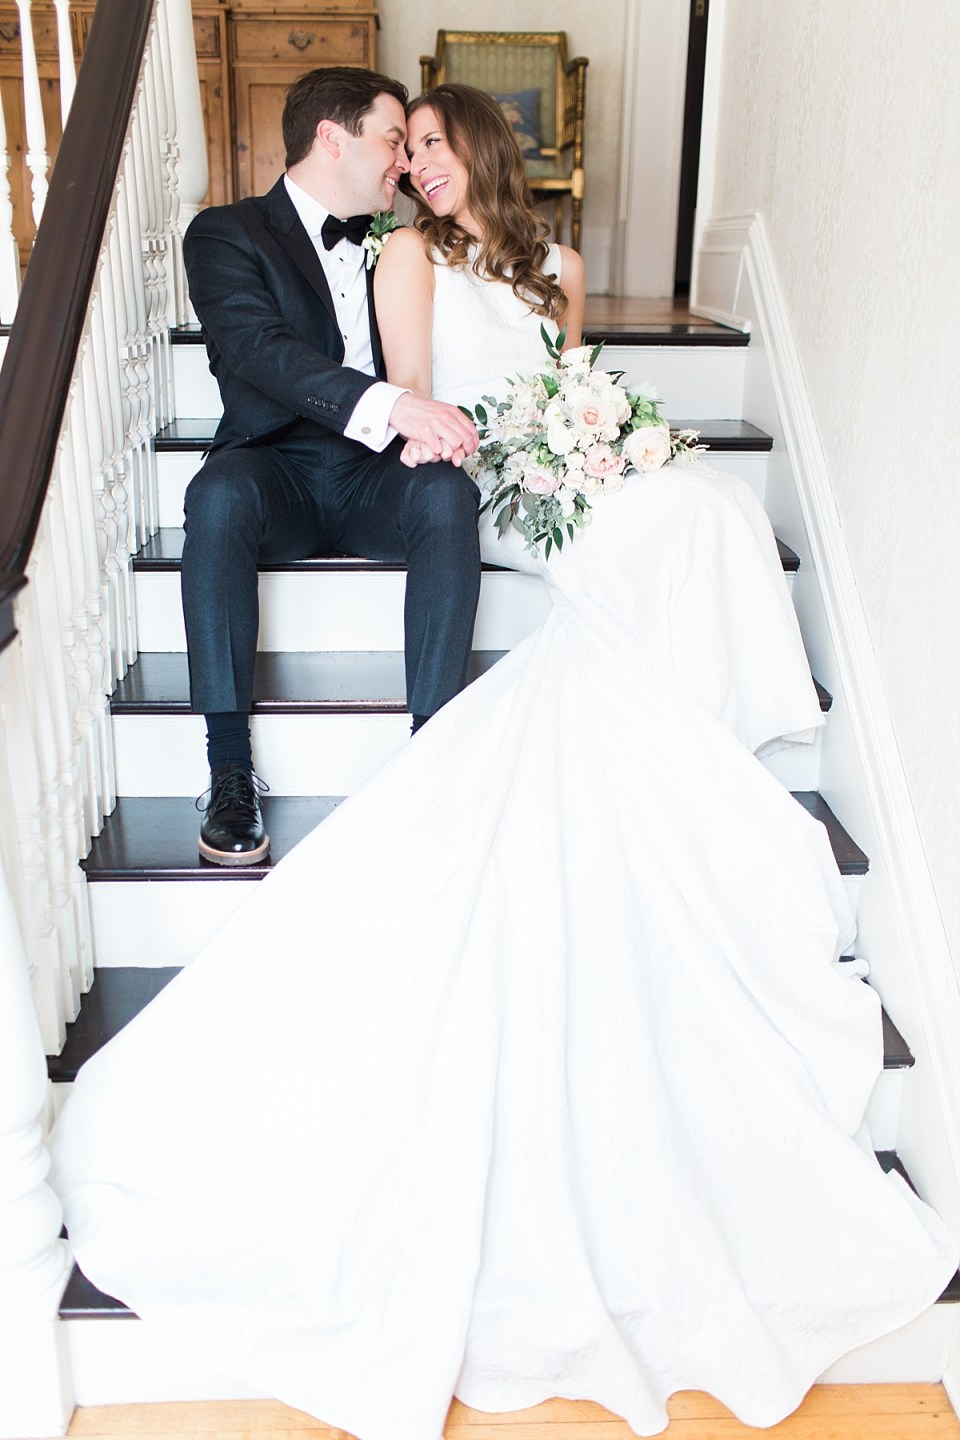 Arielle Peters Photography | Bride and groom sitting inside on stairs on wedding day at the Basilica of the Sacred Heart in Notre Dame, Indiana.